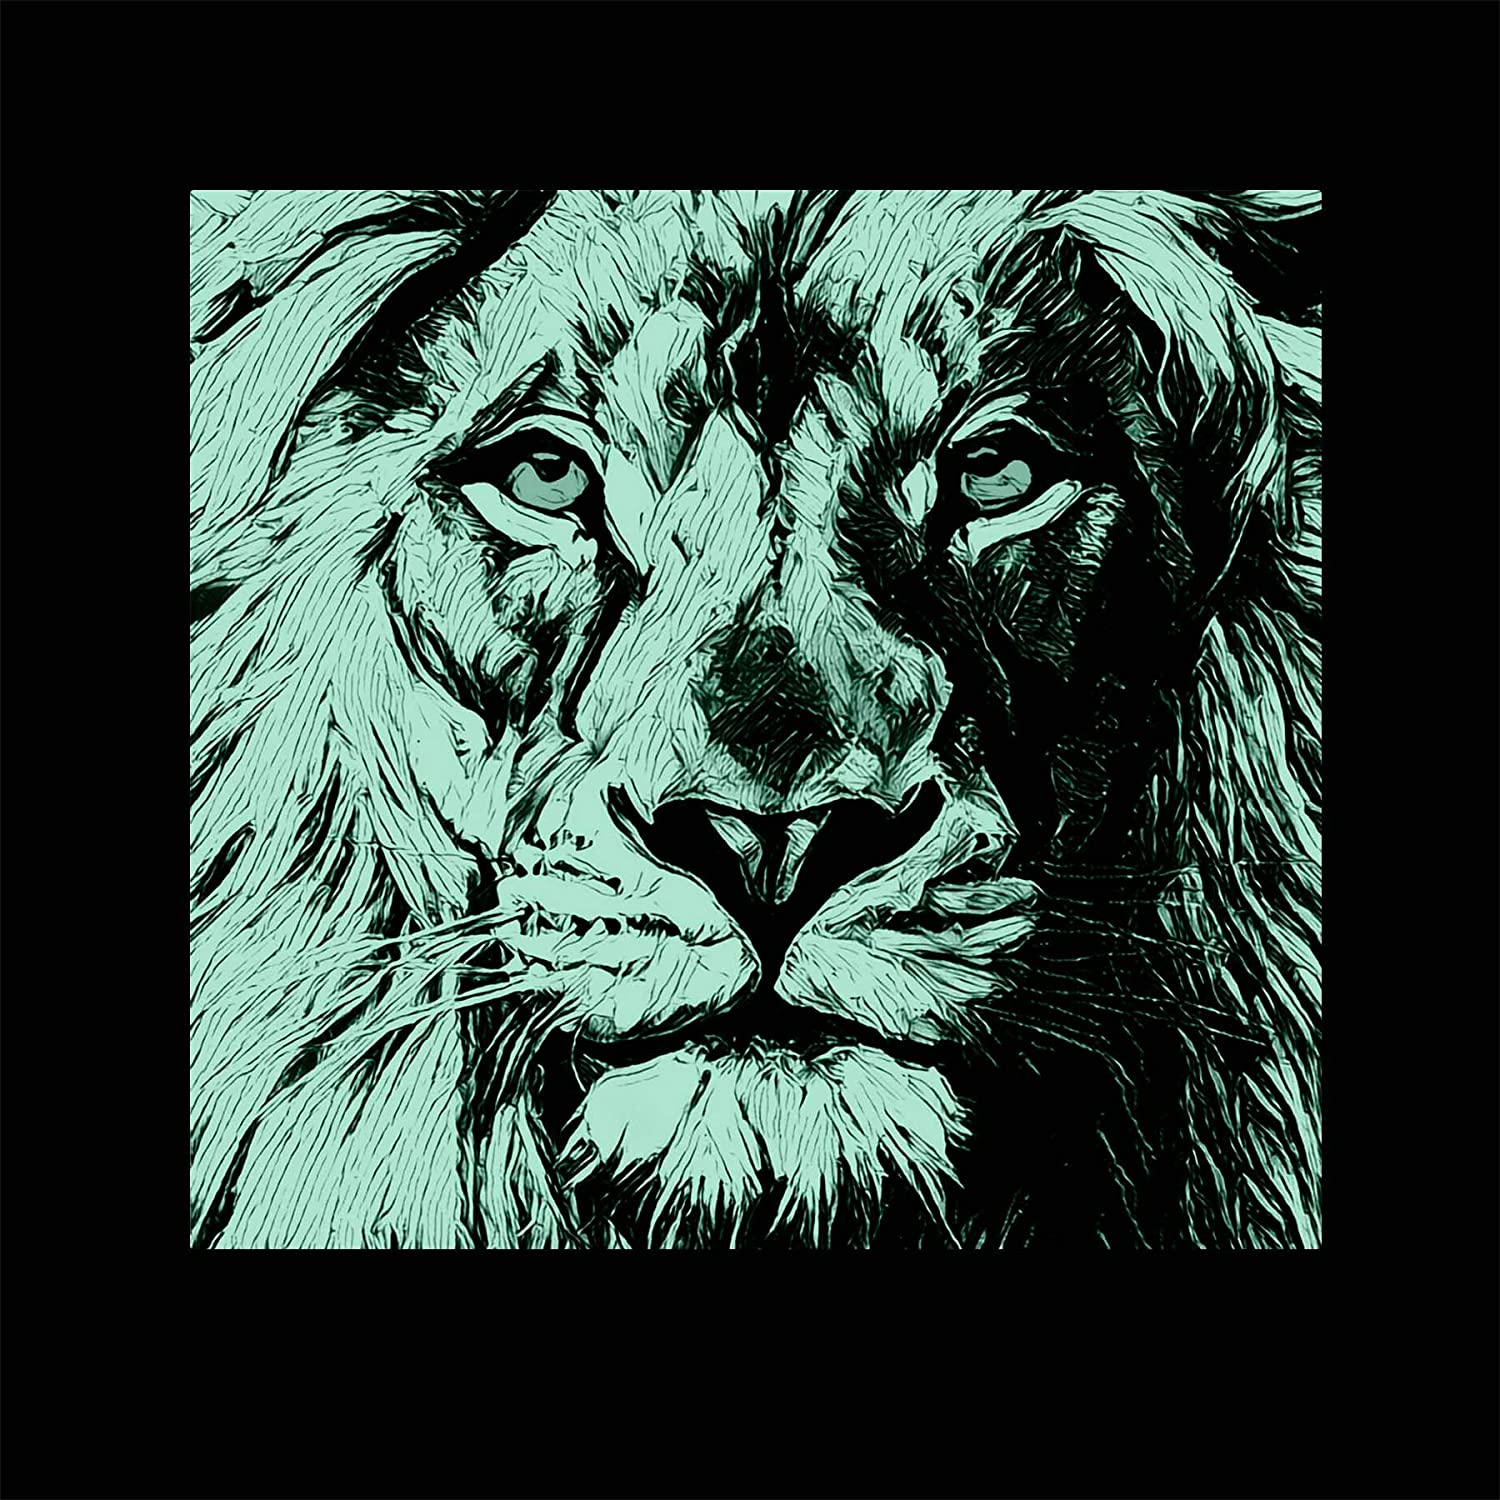 Amazon Com Startonight Canvas Wall Art Black And White Abstract Lion Draw Blue Eyes Animals Jungle Framed Wall Art 32 By 32 Inches Posters Prints